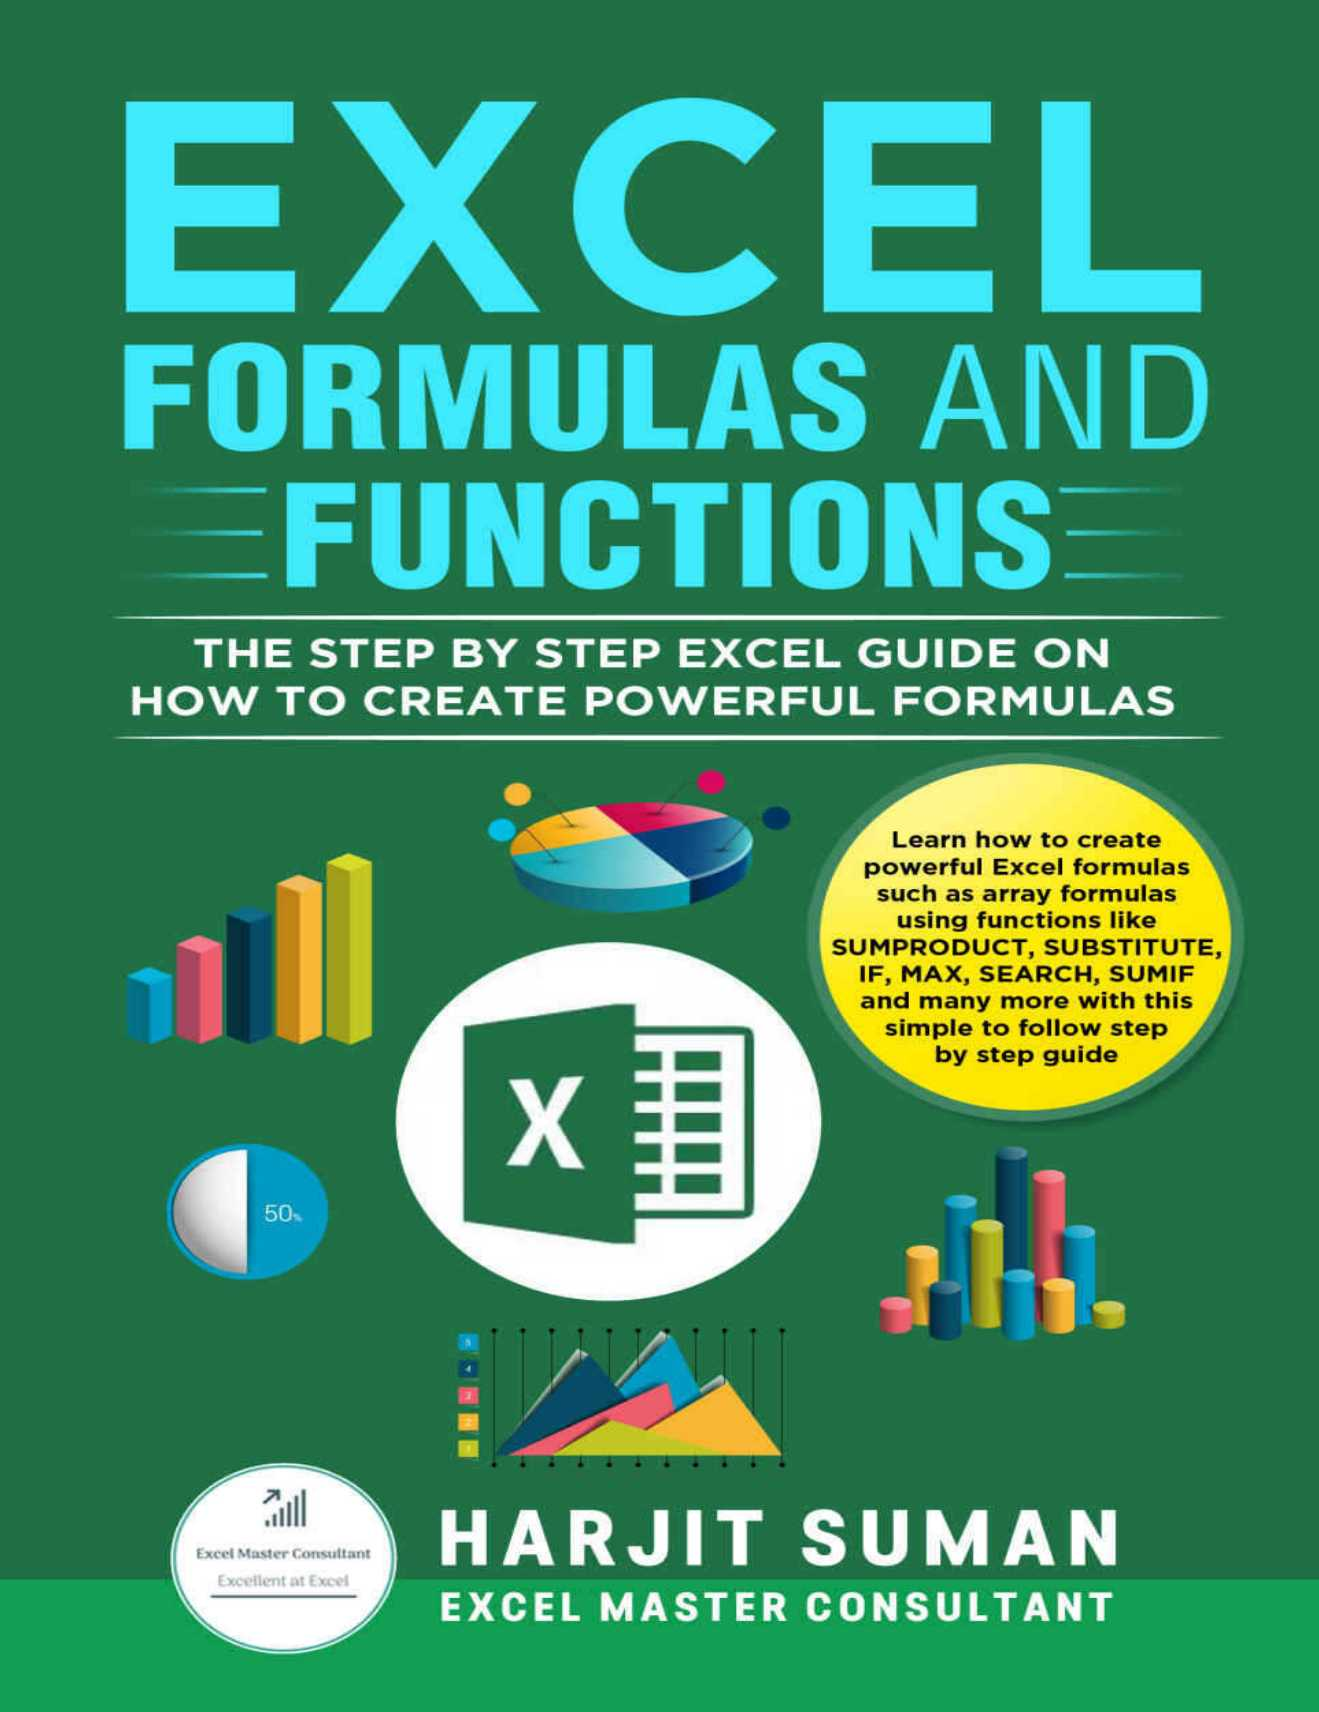 Excel Formulas and Functions: The Step by Step Excel Guide on how to Create Powerful Formulas